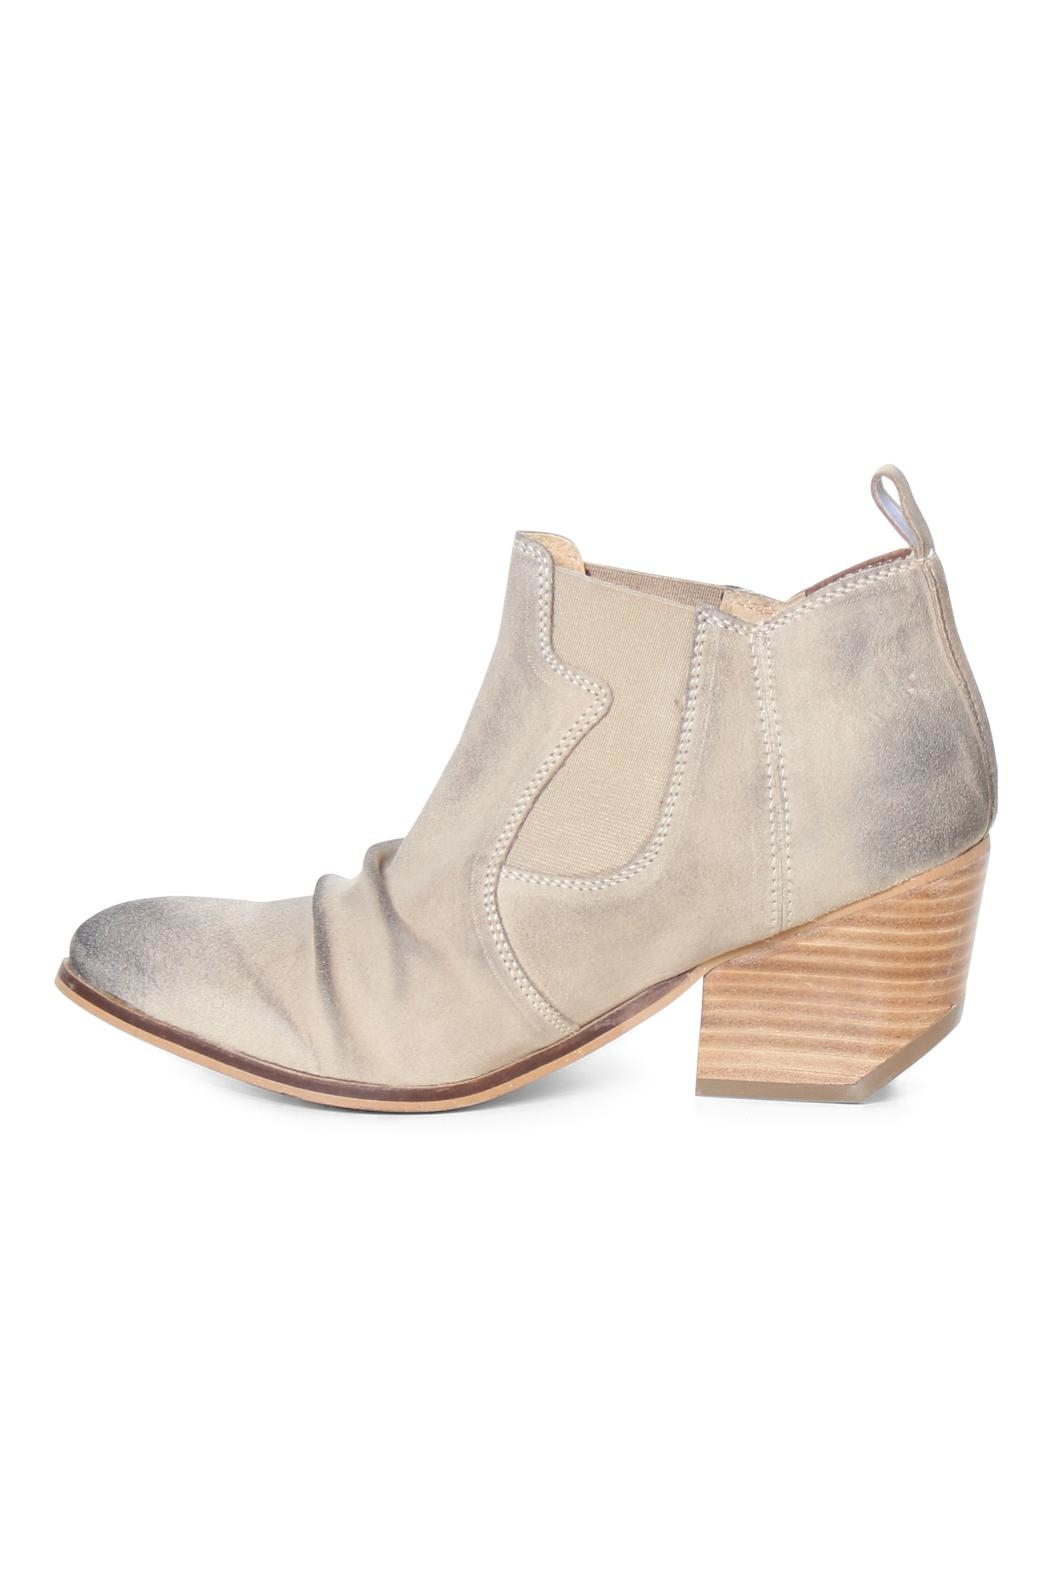 Coconuts by Matisse Wilkins Western Bootie - Side Cropped Image